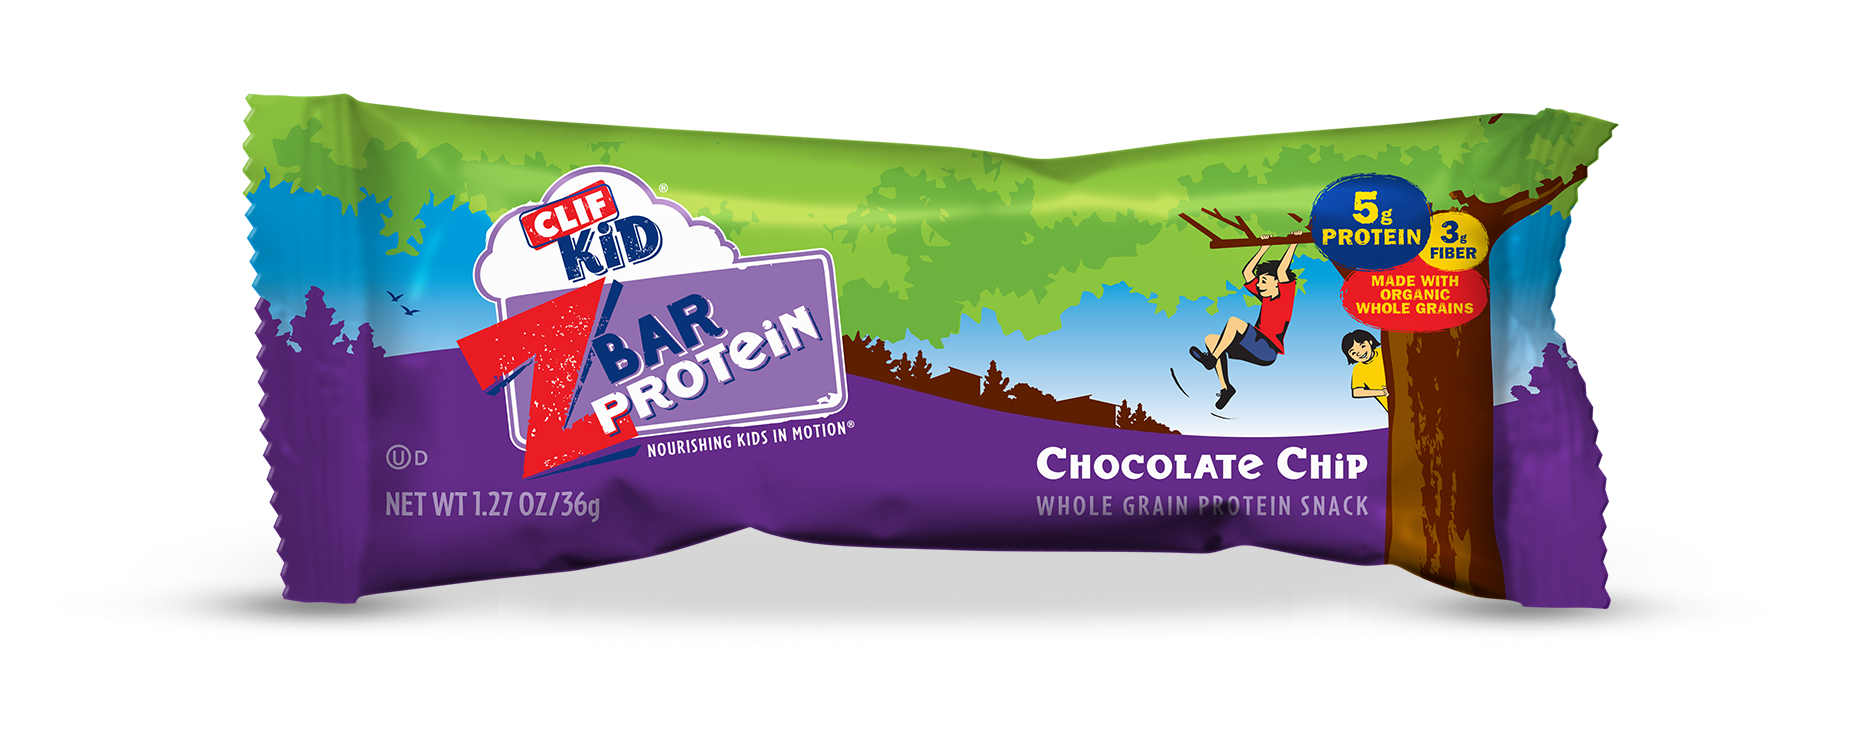 CLIF Protein bars being recalled due to undeclared peanuts, nuts